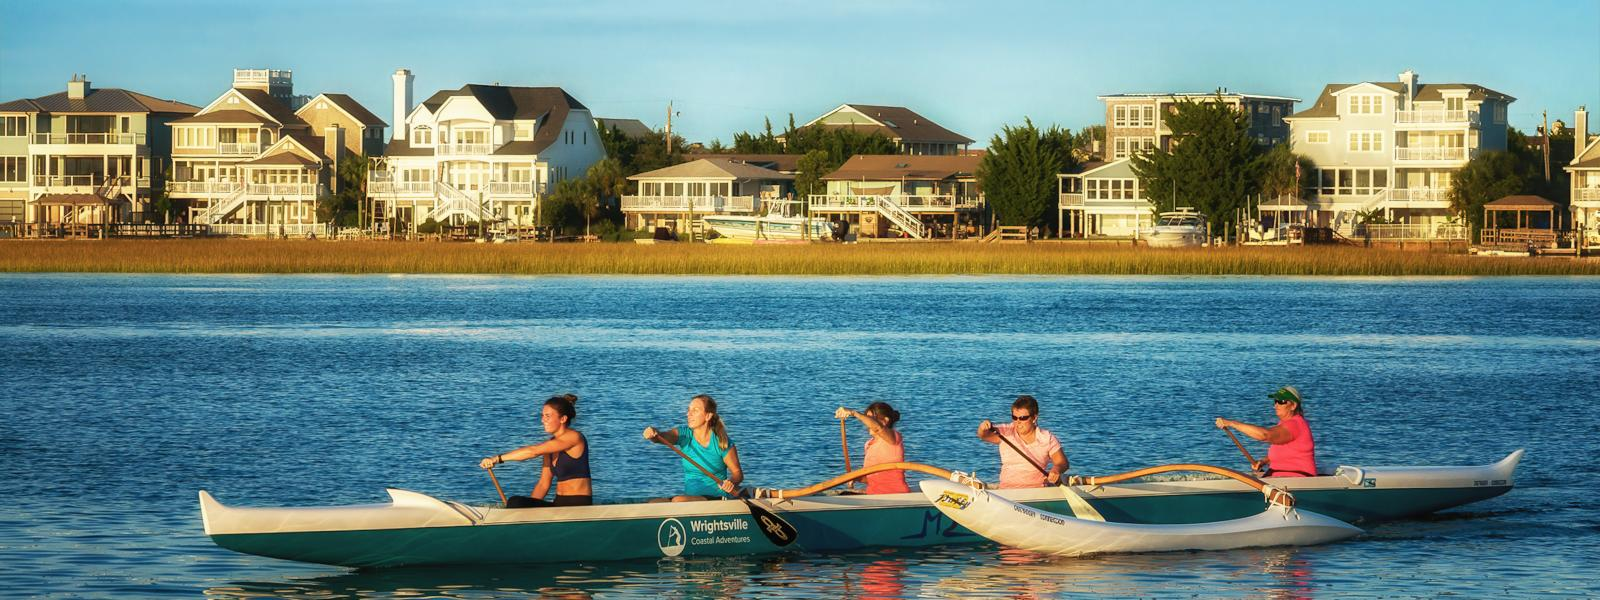 Things To Do In Wrightsville Beach Nc